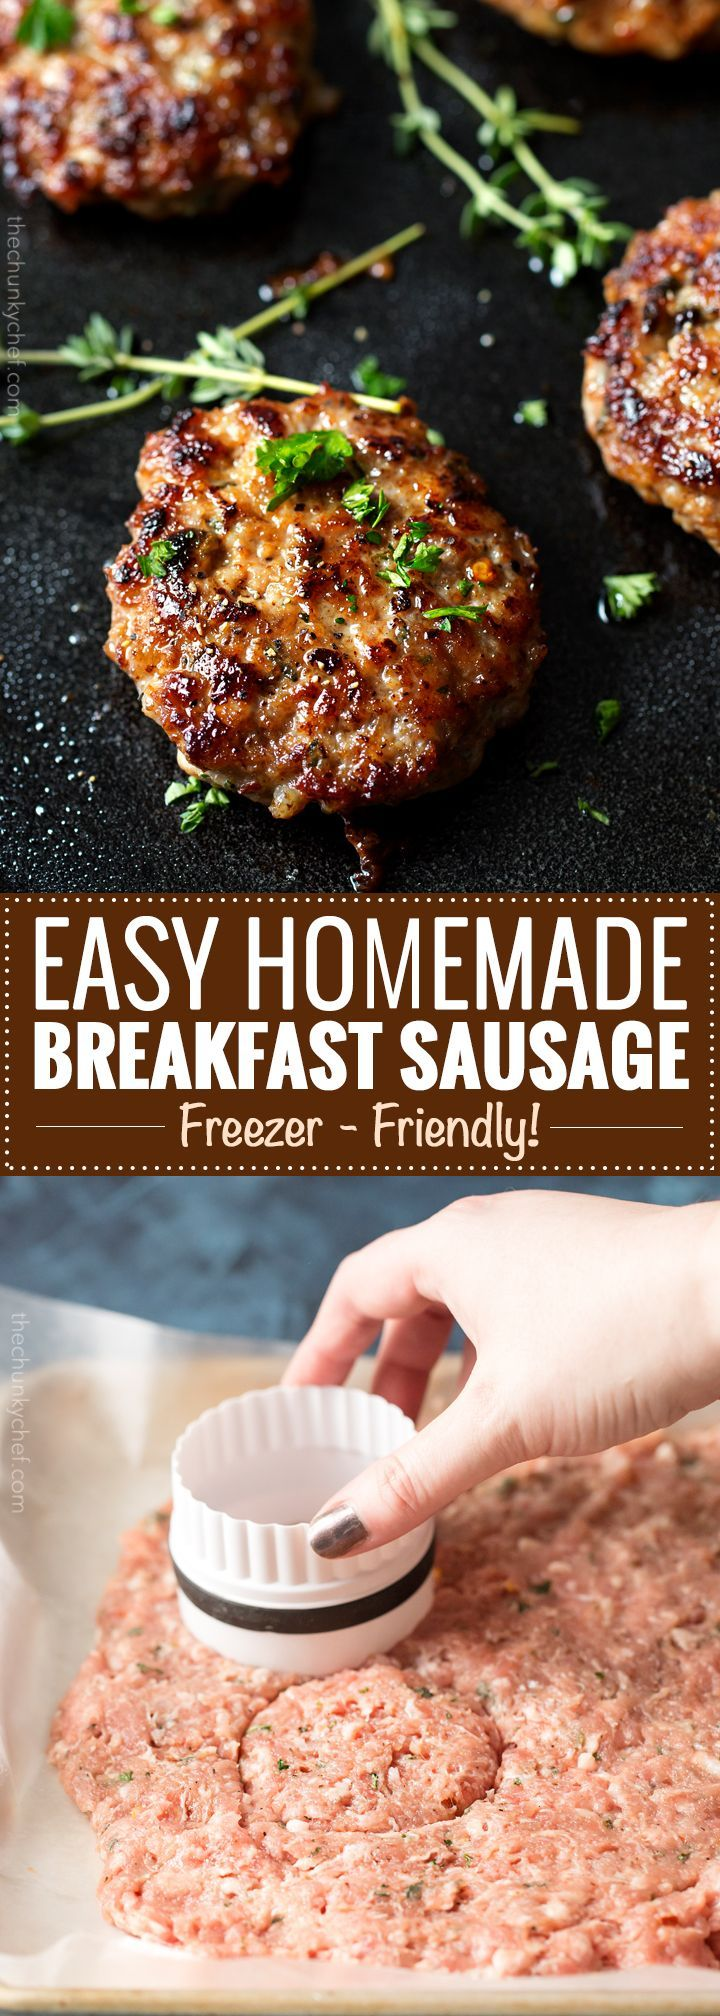 Homemade Maple Breakfast Sausage These Breakfast Sausage Patties Are Made With A Combo Of Ground Turkey And Pork Savor Recettes De Cuisine Cuisine Savoureuse